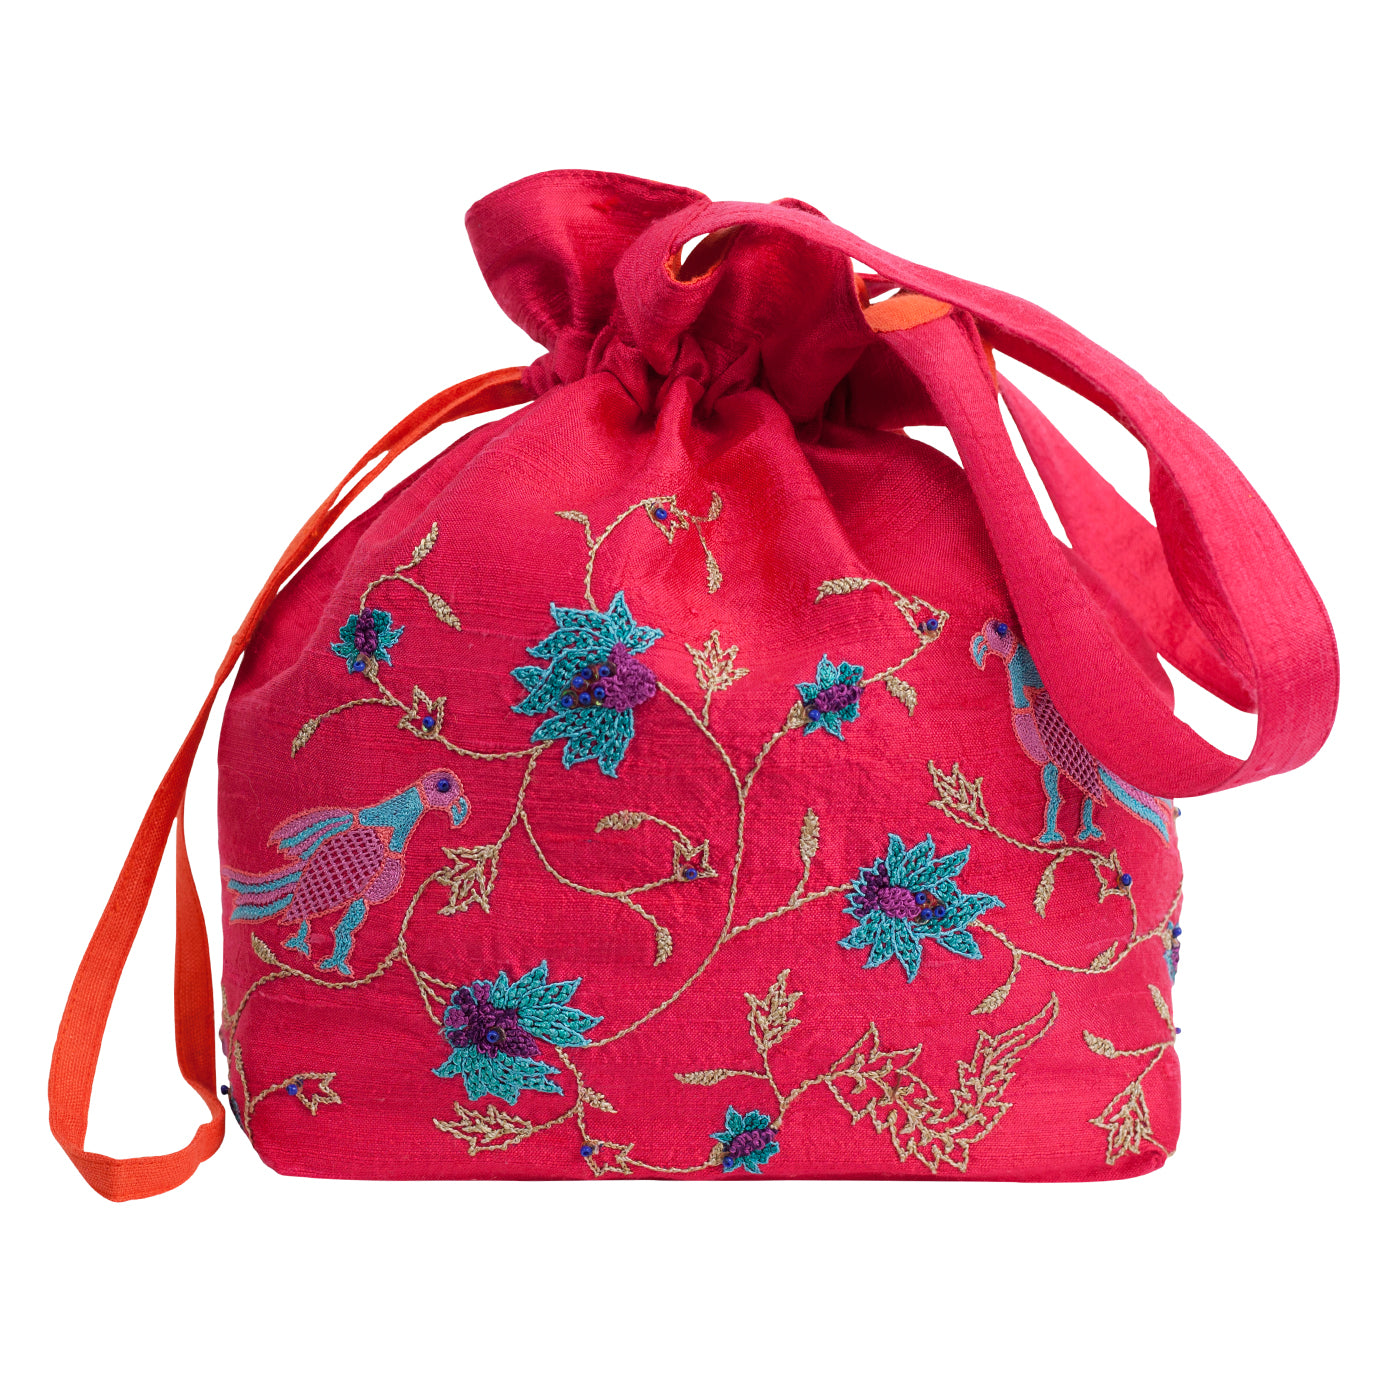 Embroidered Silk Potli Bag in Fuchsia Silk - MINC ecofashion